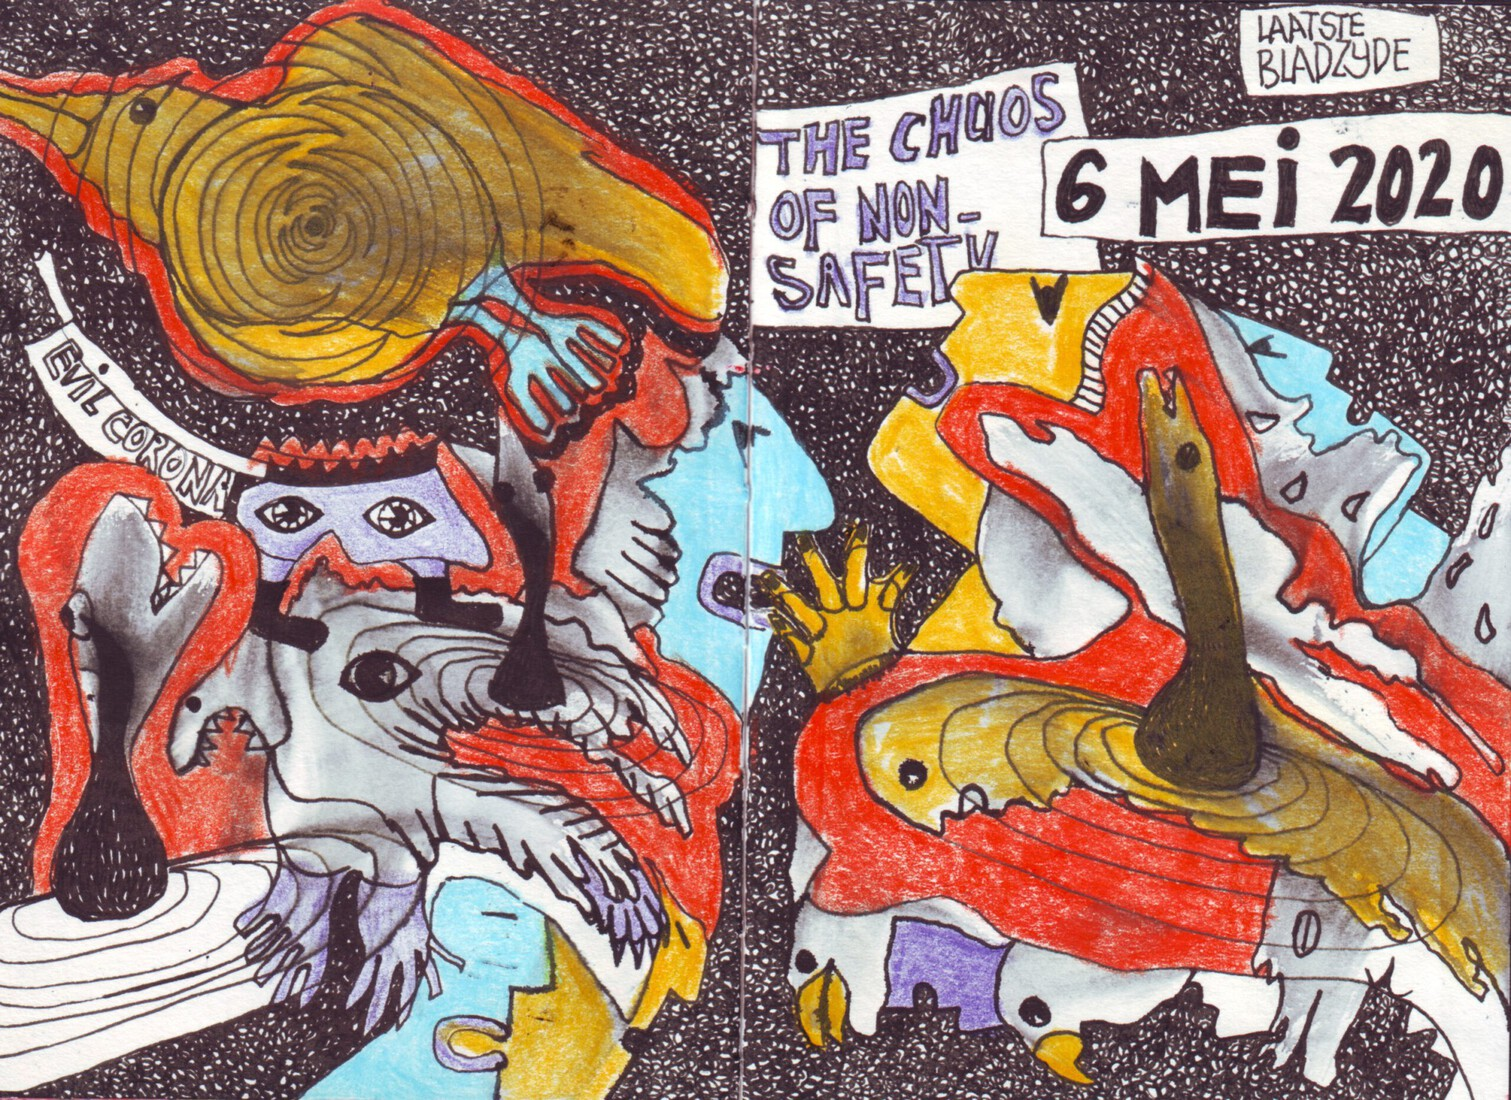 Outsiderart; Coronacrisis ; The chaos of non-safety.